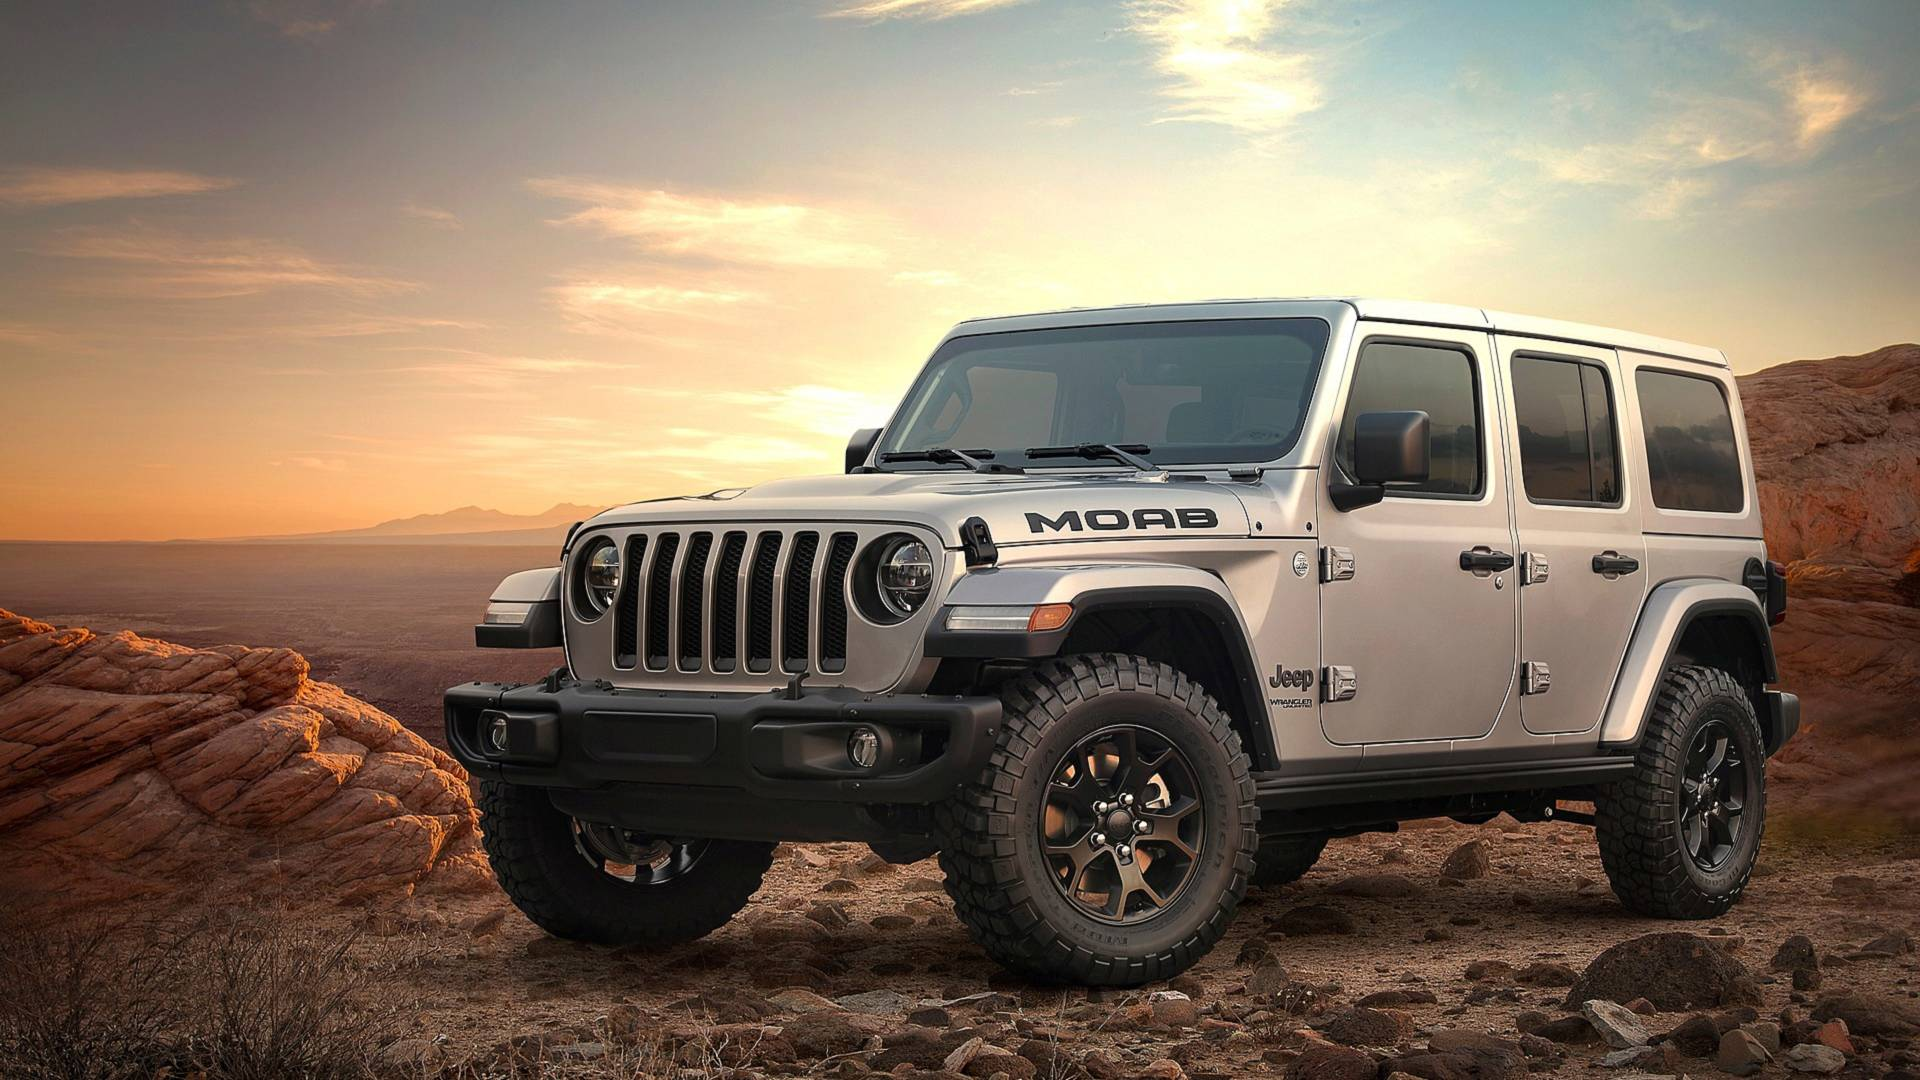 Pentastar V6 Still Prone To Cylinder Head Failure Autoevolution Aftermarket Jeep 4 0 2018 Wrangler Unlimited Moab Edition